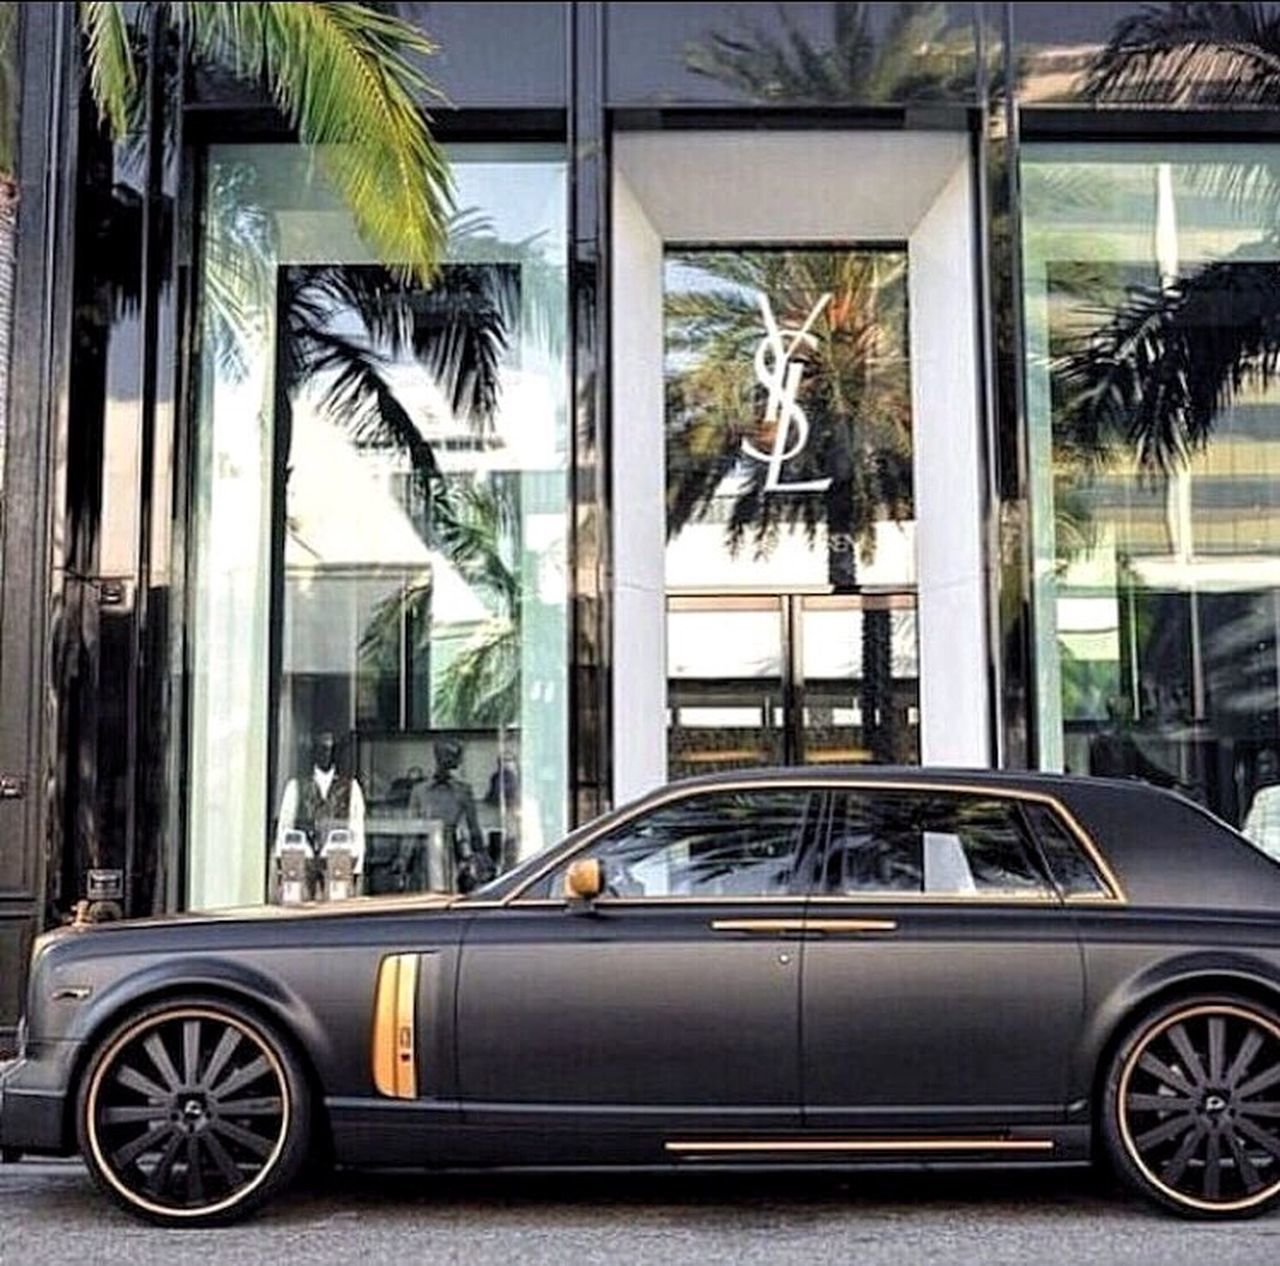 ⚫️ Black matte Rolls Phantom w/ gold details 🔸 YSL | 📍join us on instagram for more billionaire lifestyle content 👉 same name @billionairelabel Billionaire  Billionairelabel Luxury Insta Instafollow Instadaily Instamood Instalike Instagood Followme Follow Like Like4like Likeforlike TBT  Igers Vscocam VSCO Car Rolls Royce Rollsroycephantom